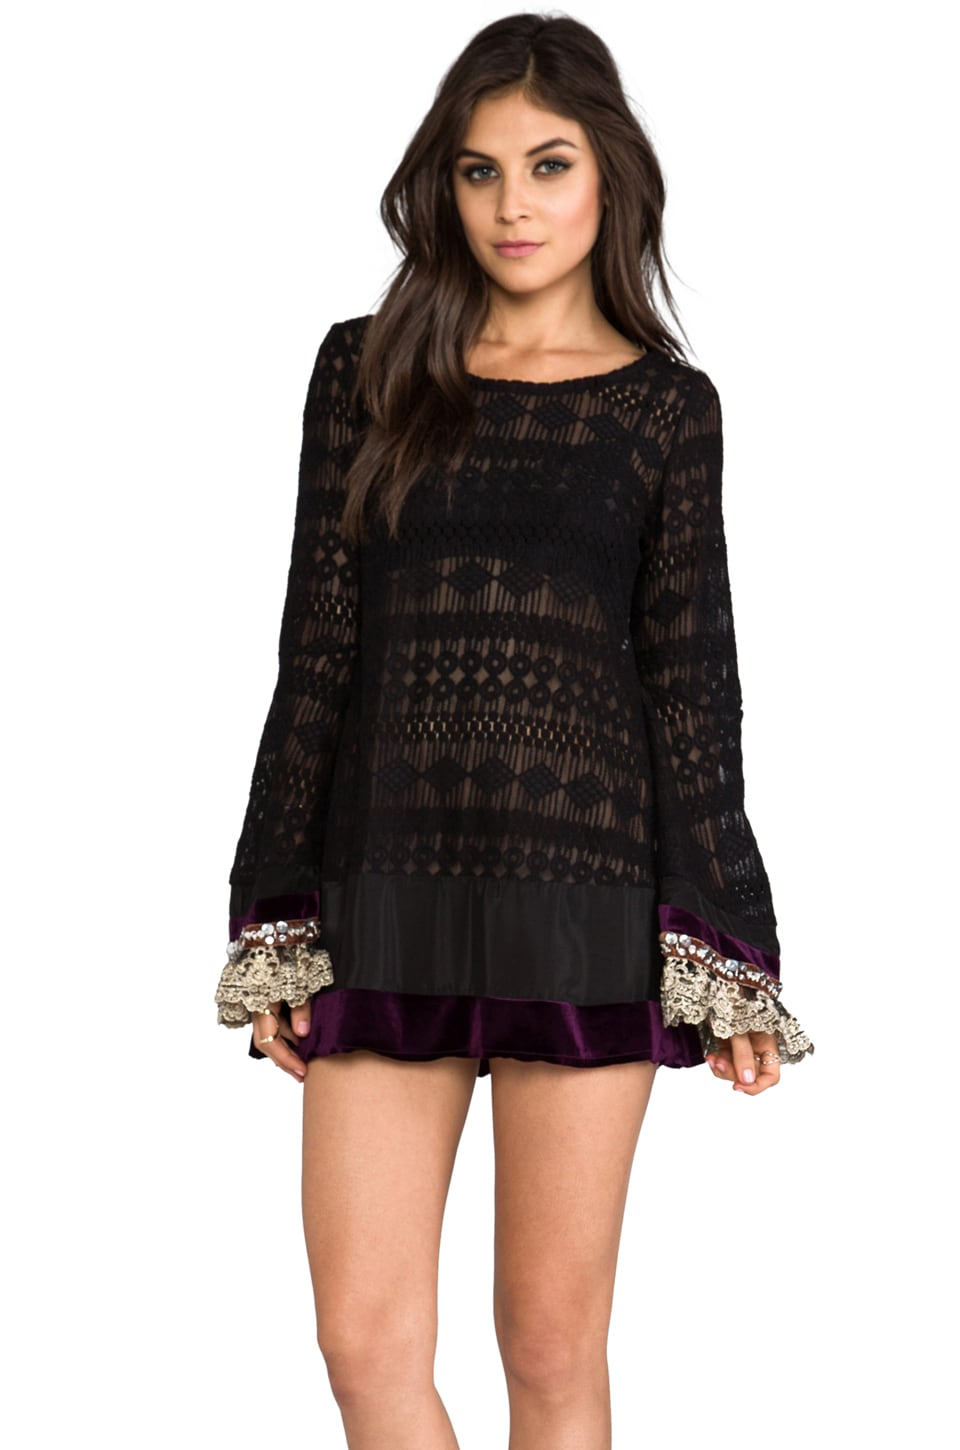 Gypsy Junkies Mimi Mini Lace Dress w/ Bell Sleeve in Boheme Black